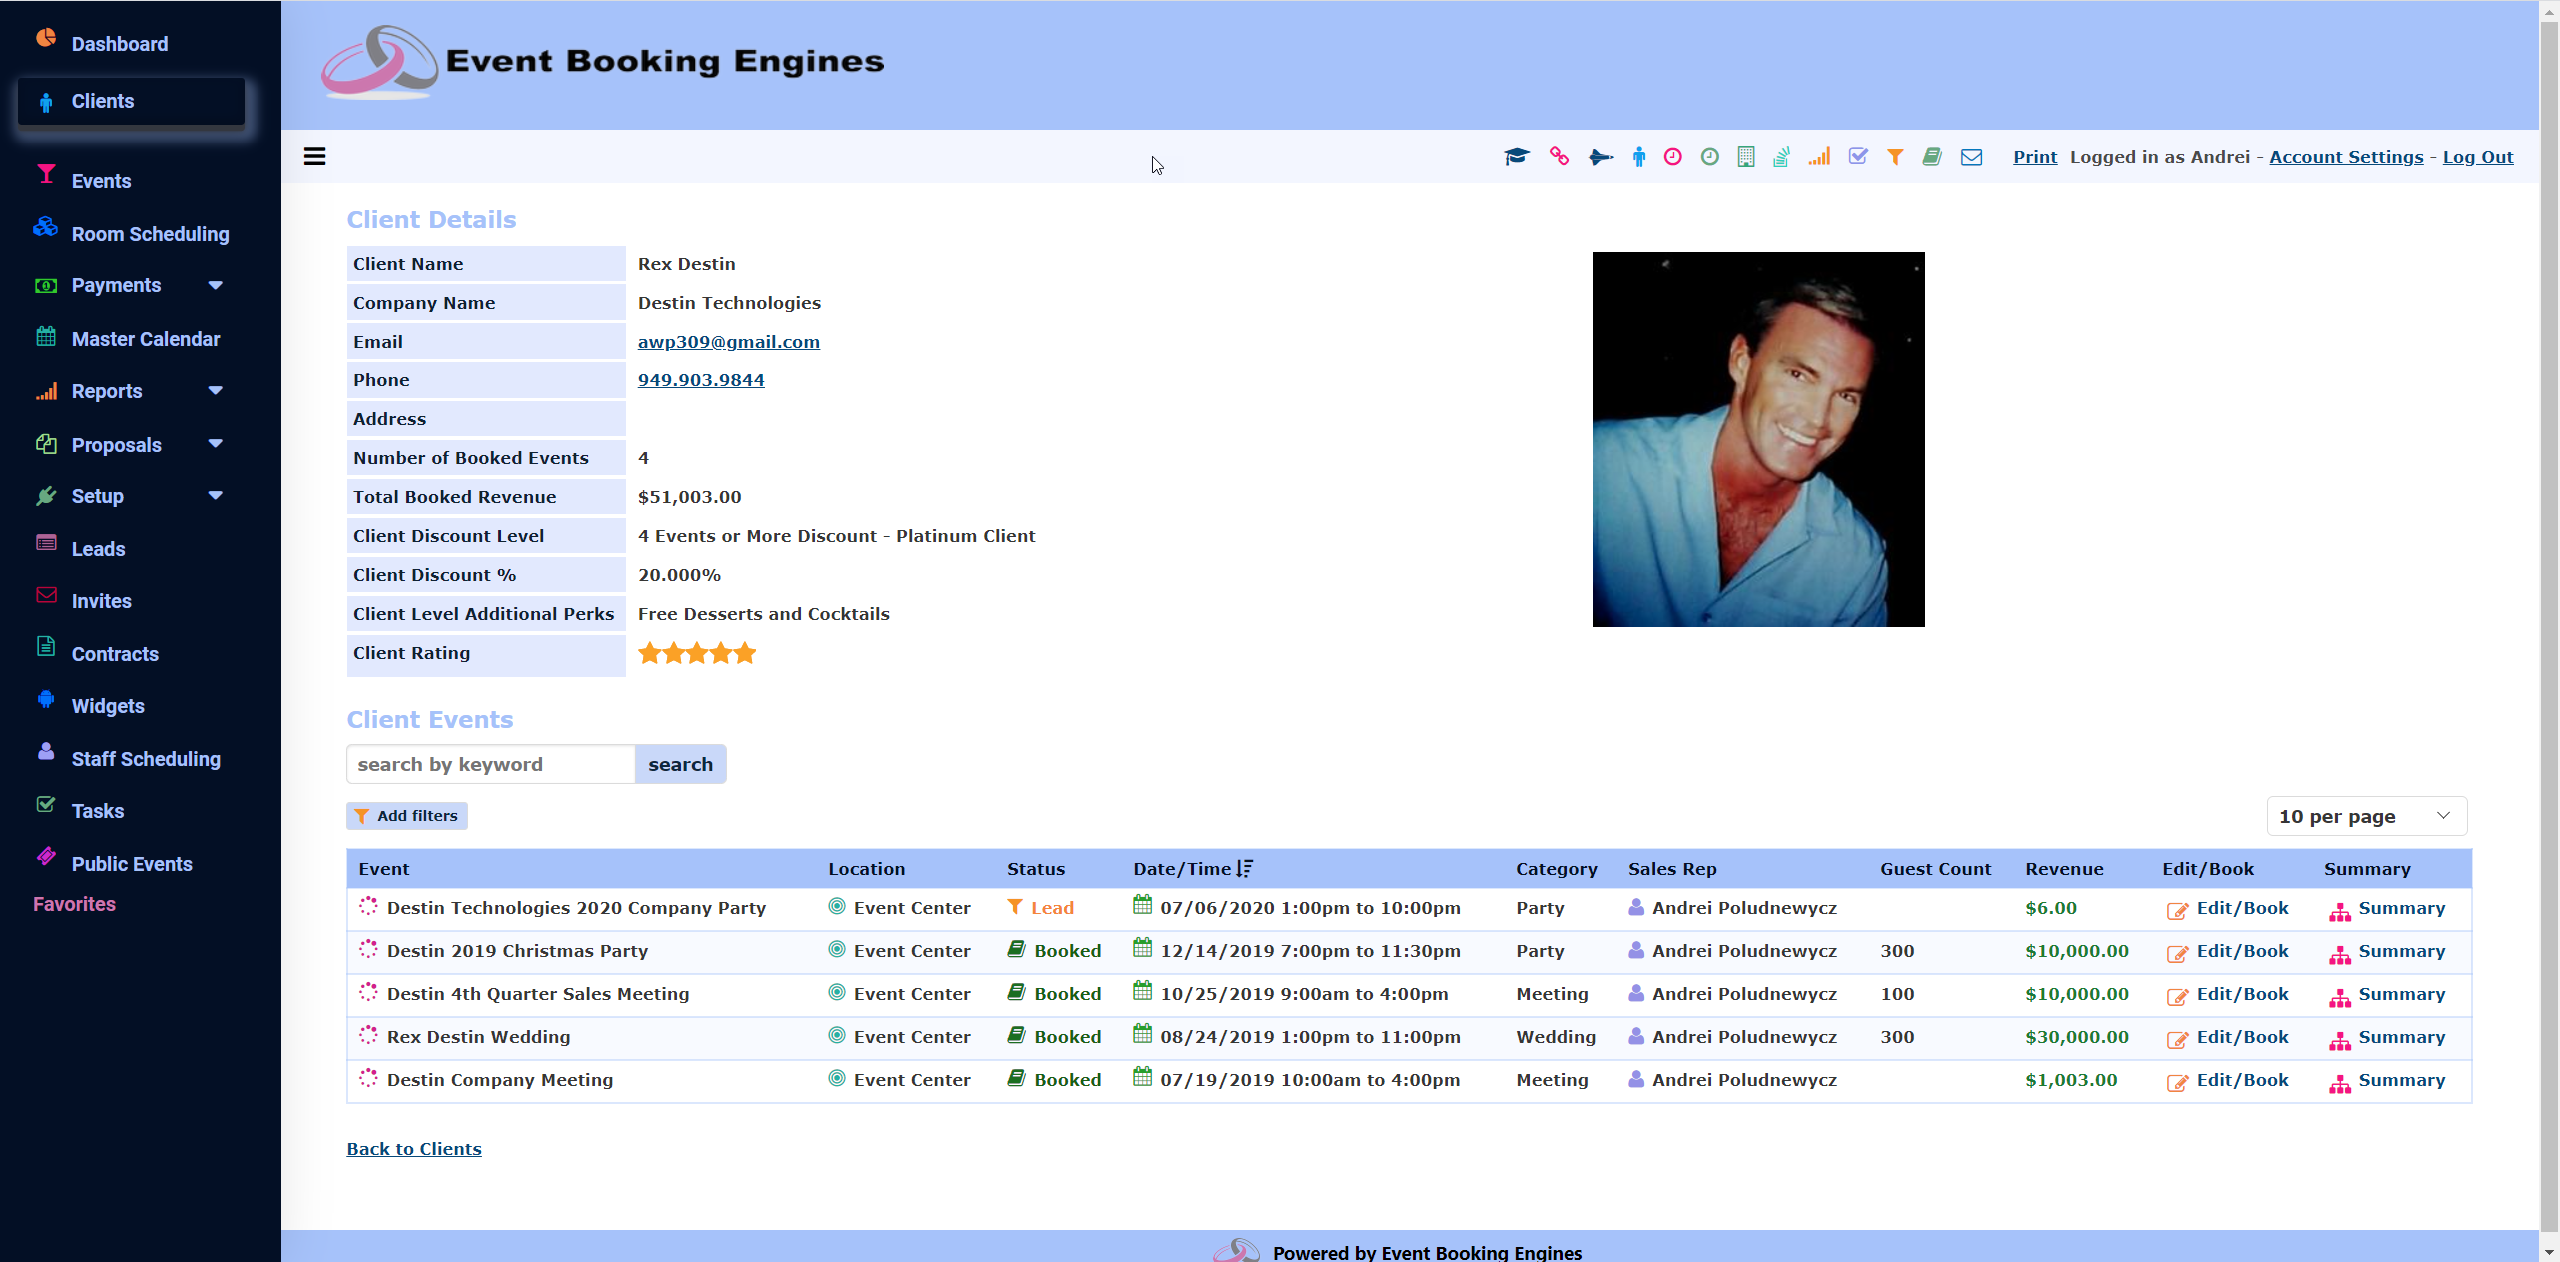 Event Booking Engines Software - Client Details